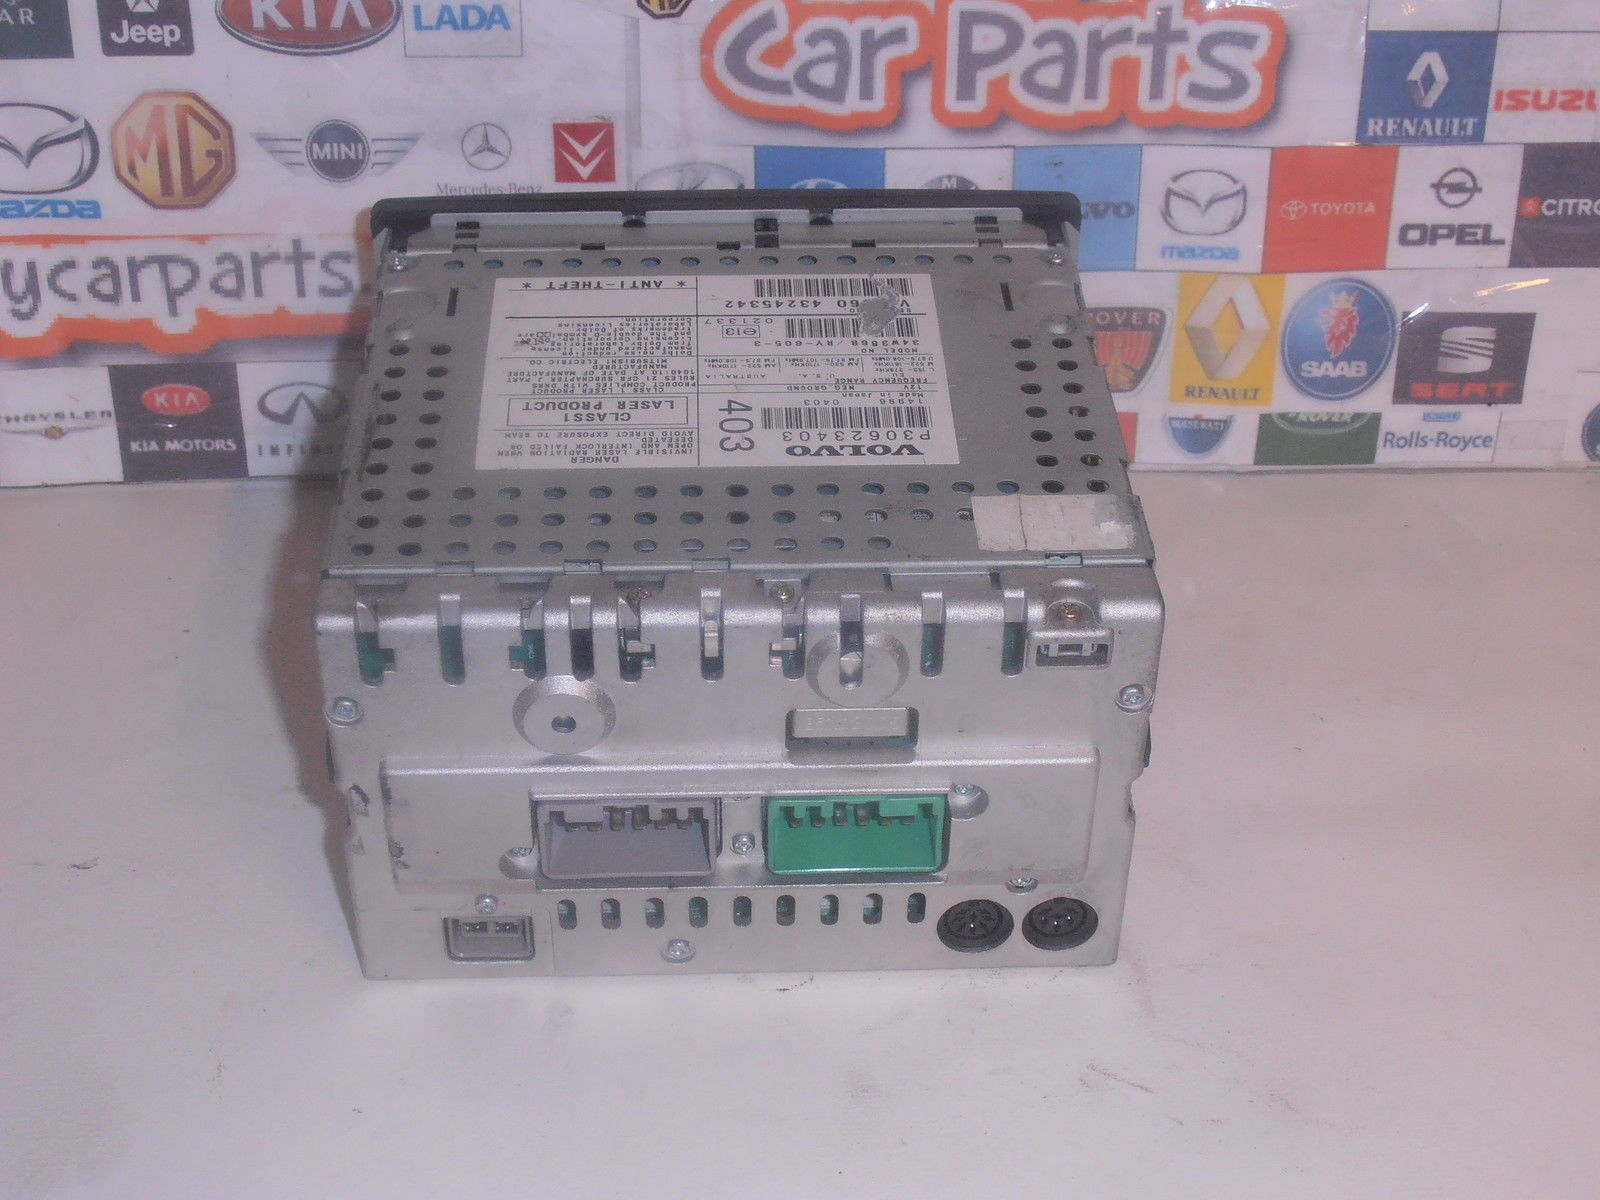 VOLVO S40 V40 96-04 CD PLAYER RADIO TAPE HEAD UNIT HU-655 P30623403 WITH CODE